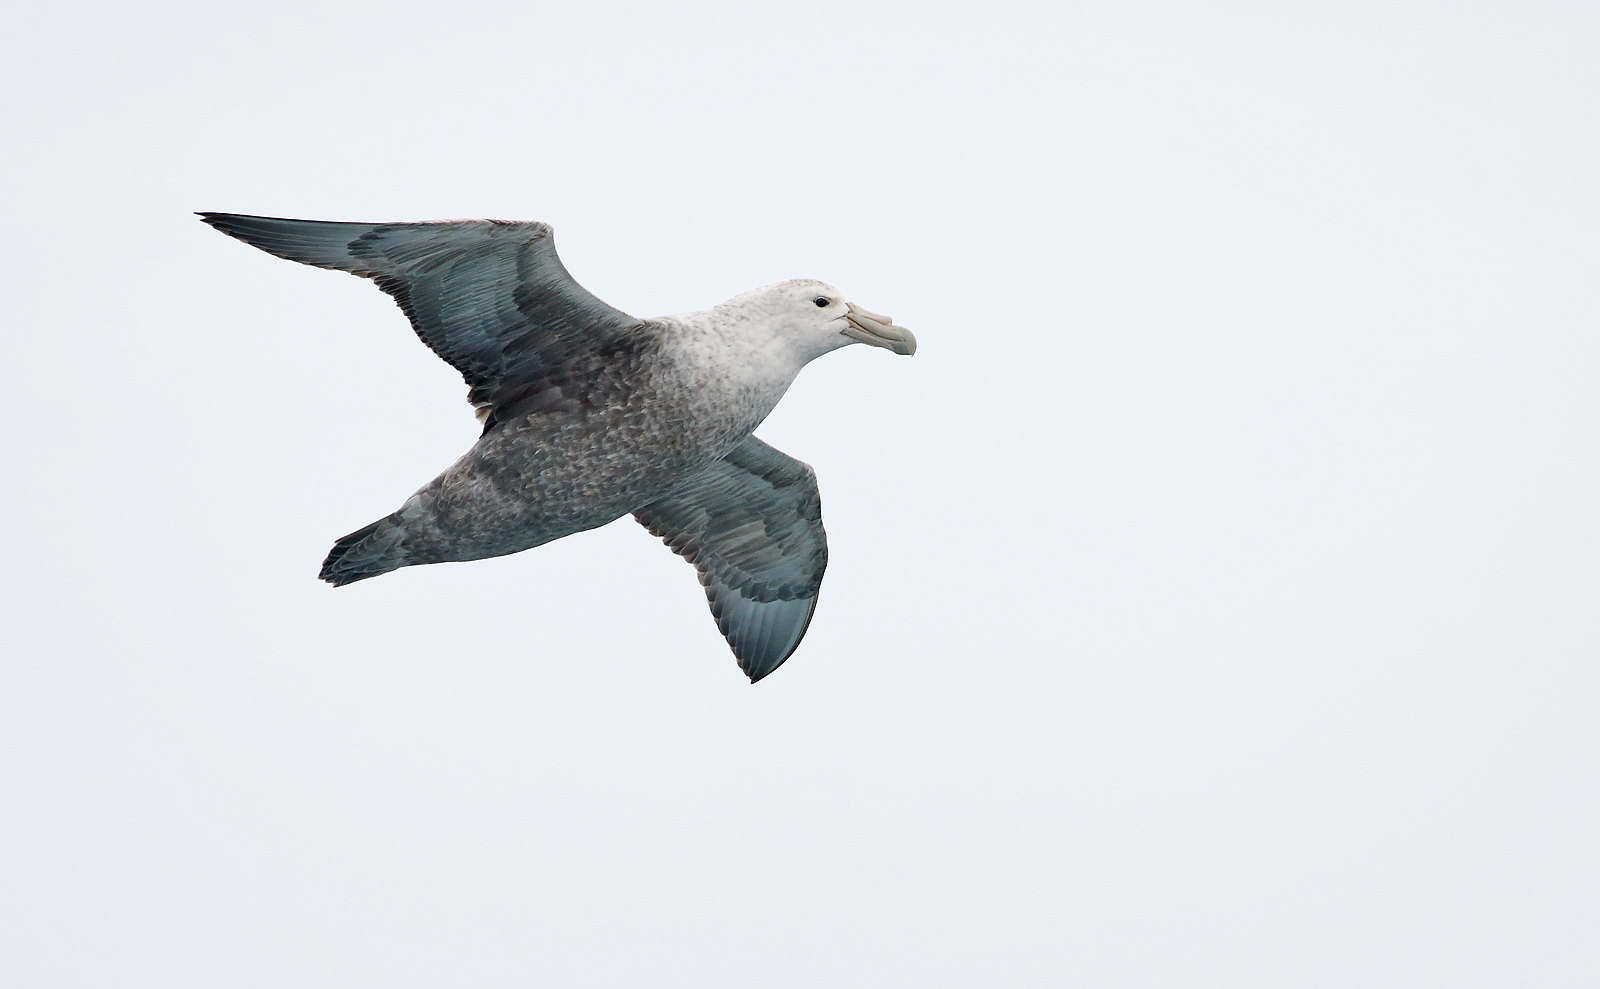 Southern Giant Petrel - adult